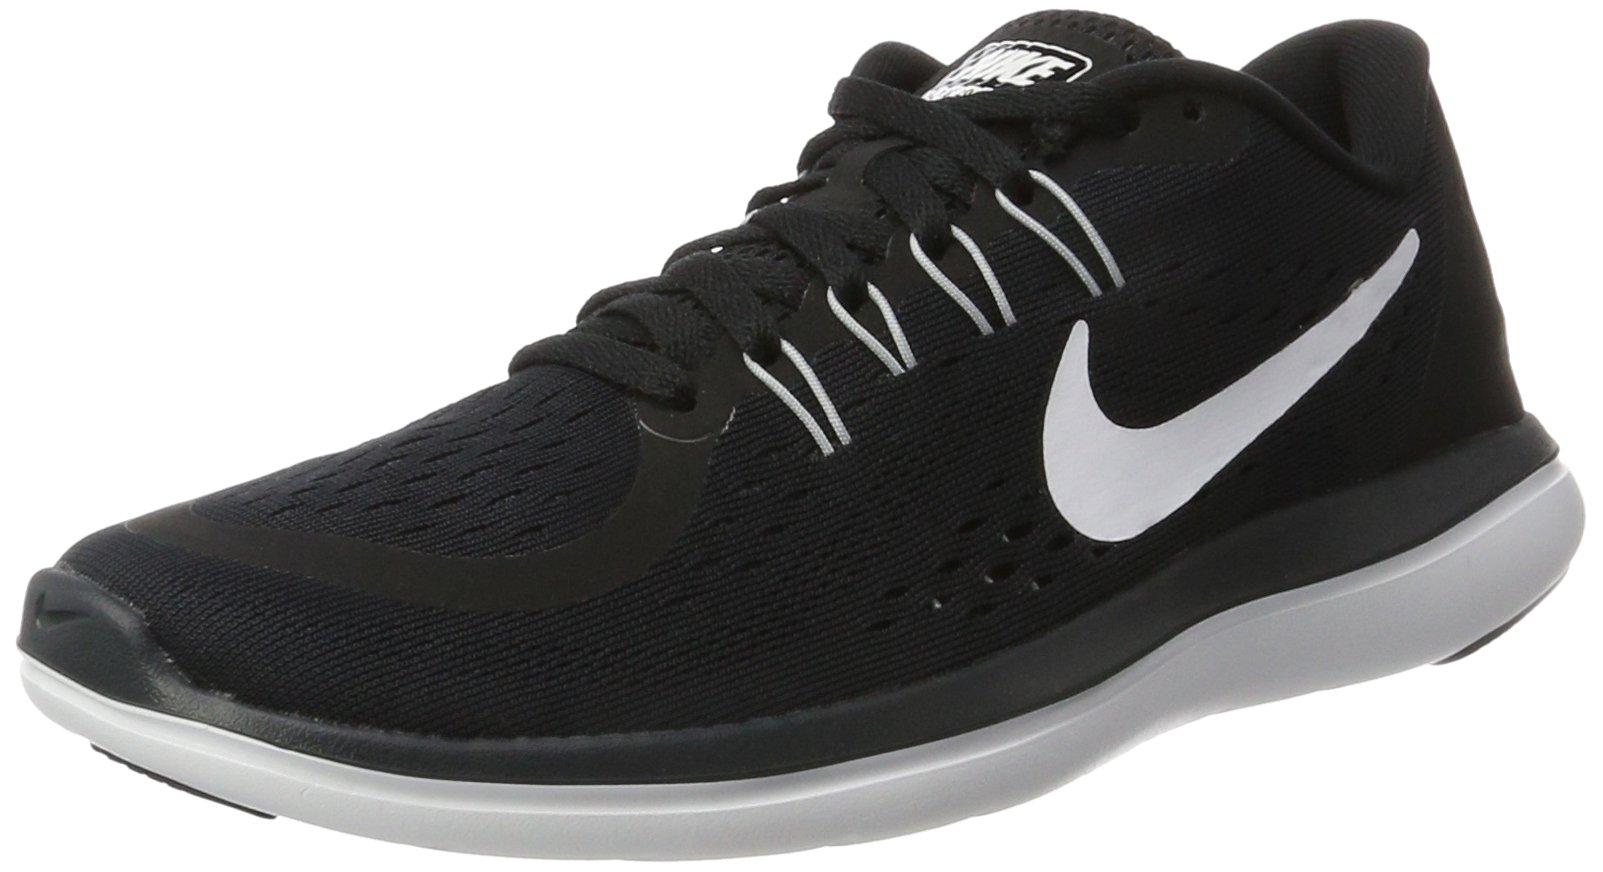 Women's Nike Flex 2017 RN Running Shoes 898476-001 (10.5)